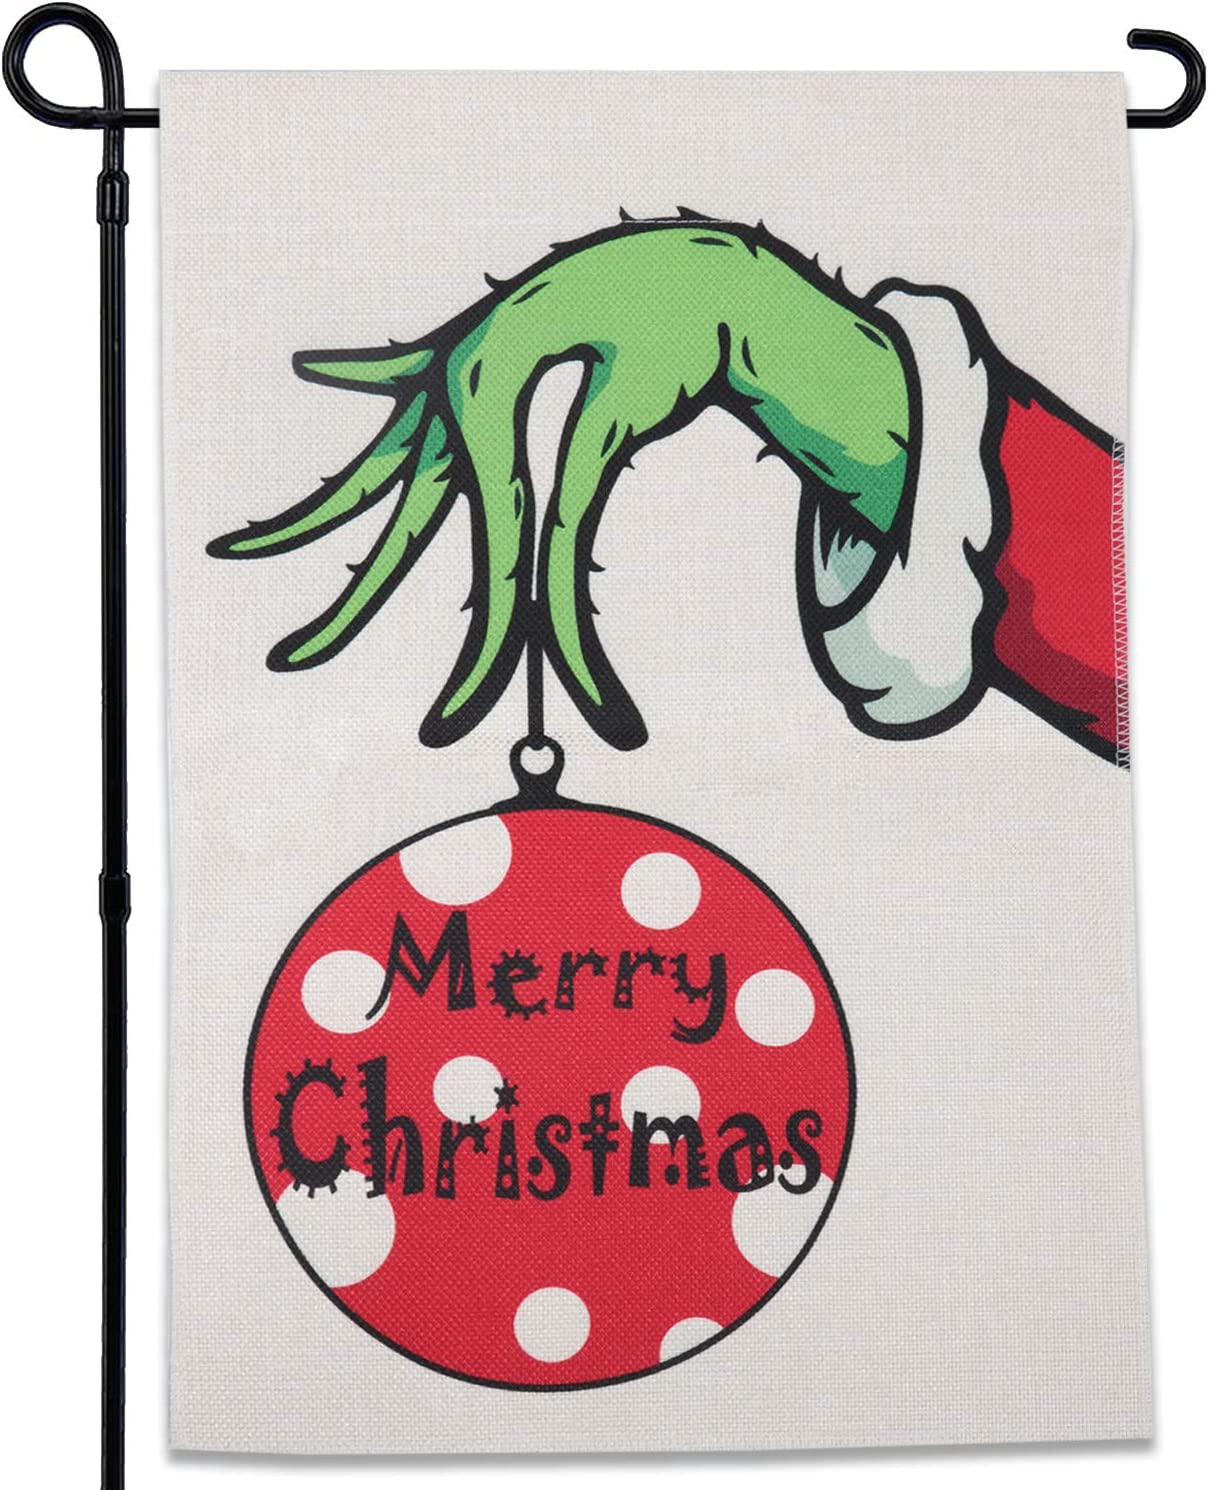 GEGEWOO Merry Christmas Grinch Garden Flag Vertical Double Sided Merry Christmas Grinchmas Winter Farmhouse Holiday Party Yard Outdoor Decoration 12 x 18 Inch